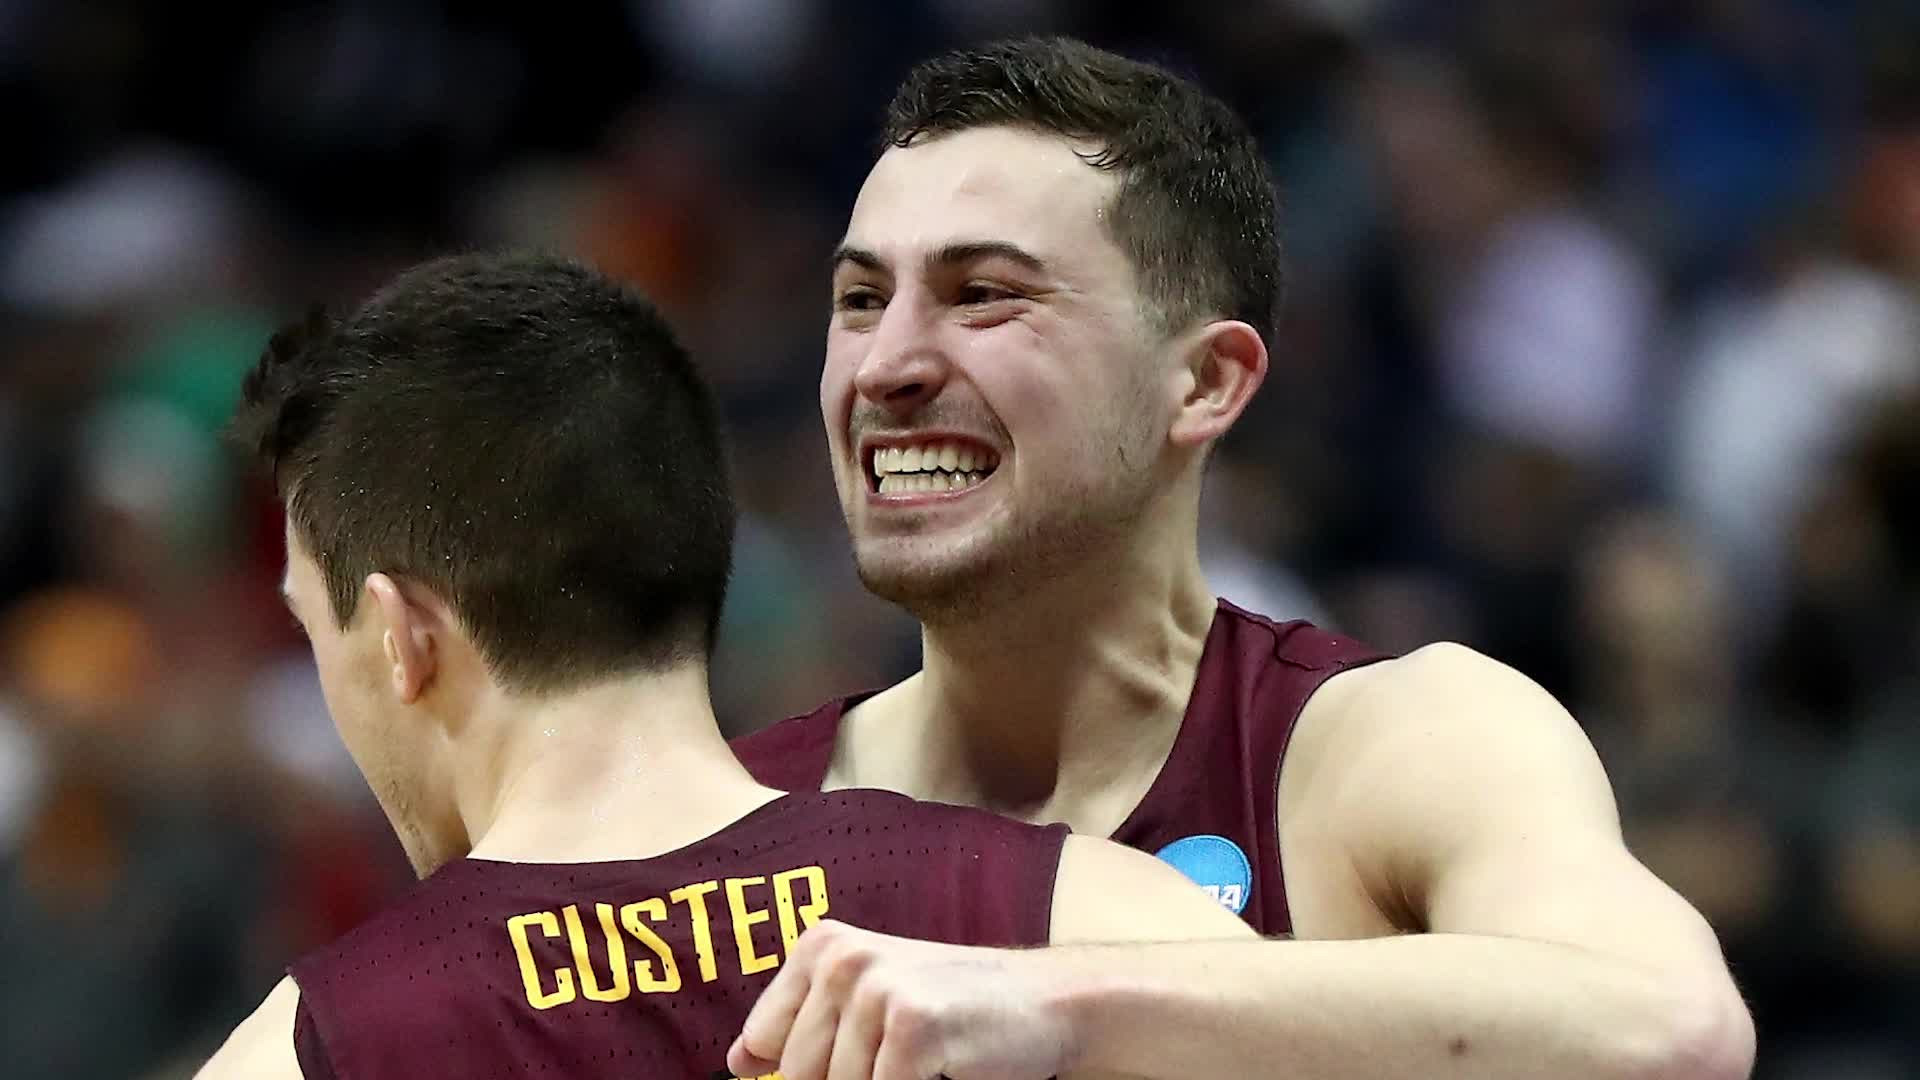 Parents of 2 Loyola-Chicago players from Blue Valley Northwest ready to  cheer on sons in Final Four | FOX 4 Kansas City WDAF-TV | News, Weather,  Sports